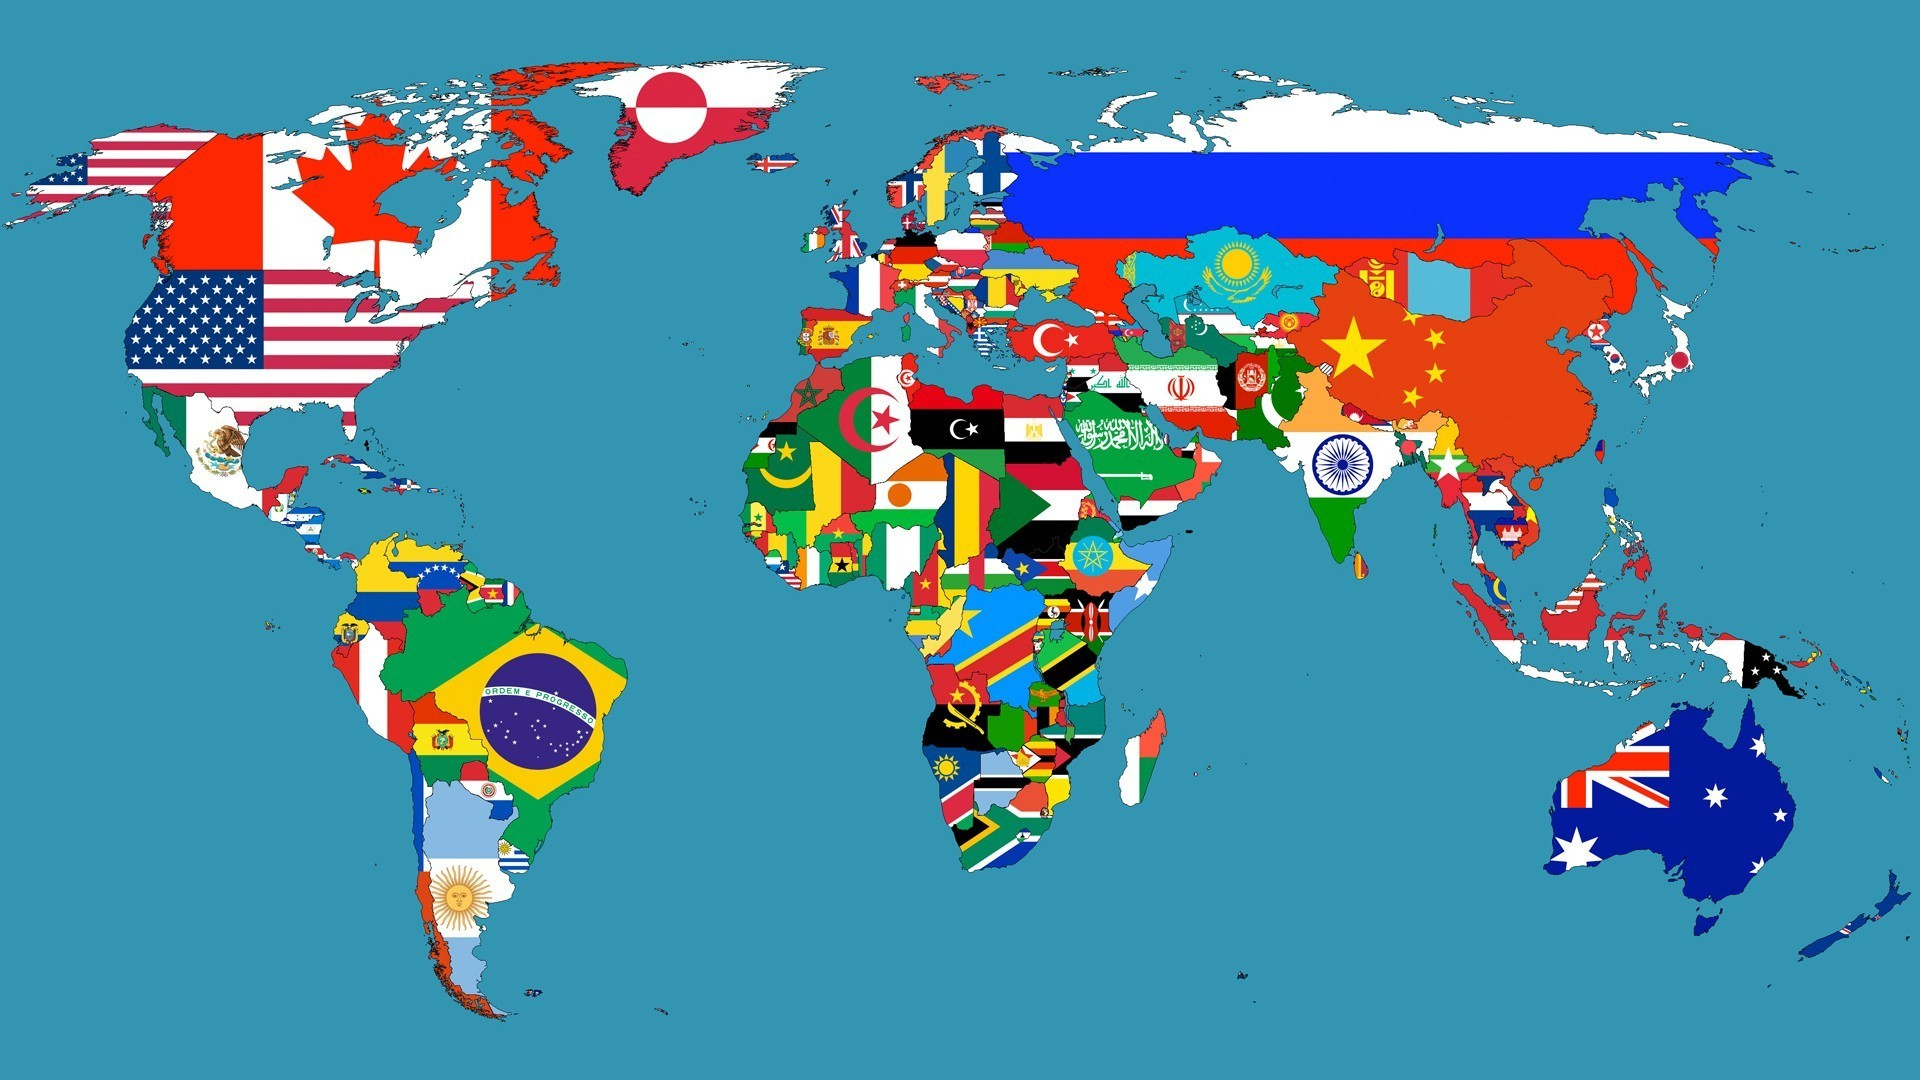 Download world map wallpaper with countries gallery world map wallpaper with countries gumiabroncs Choice Image